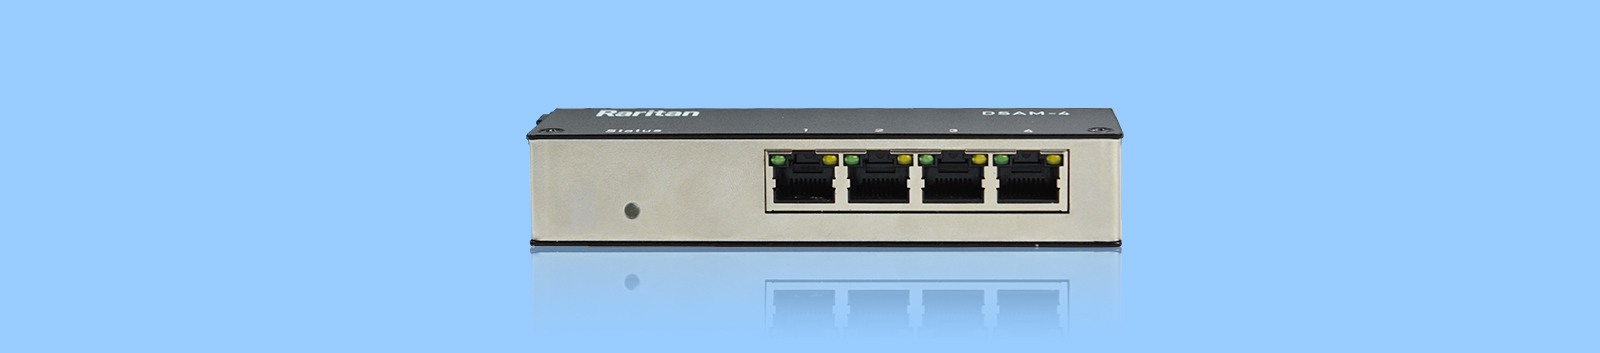 Serial Access Modules (DSAM) for Dominion KX III KVM Switch